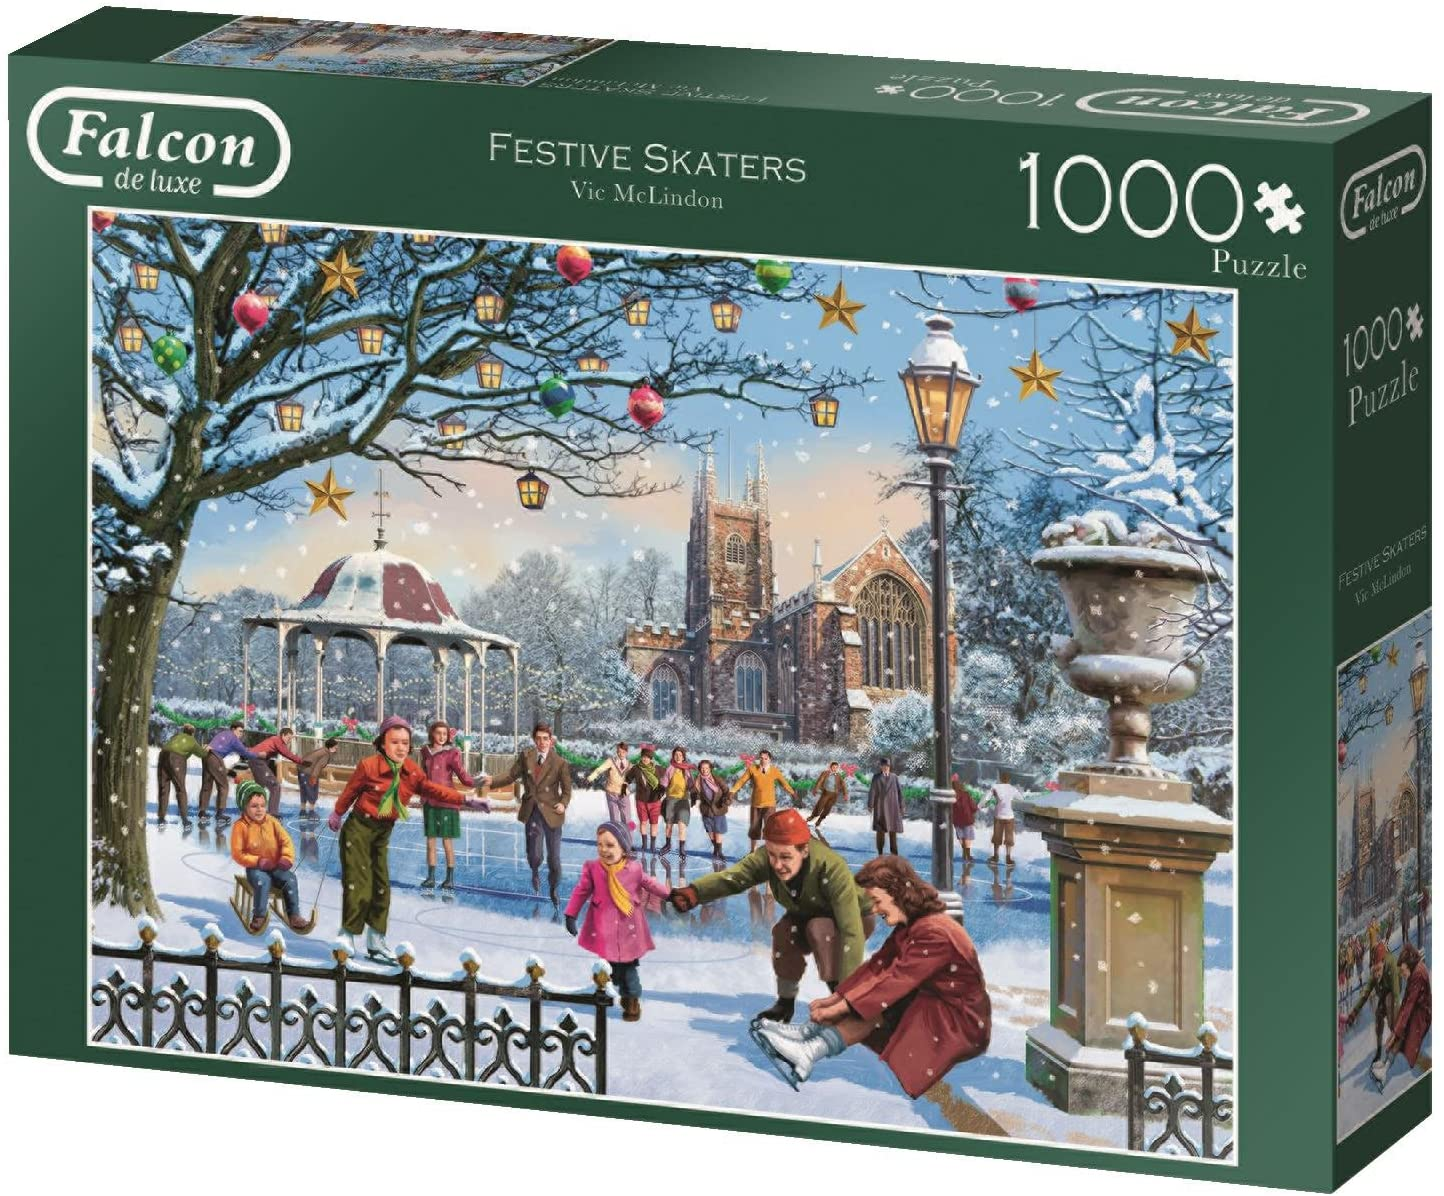 Jumbo 11185 Festive Skaters Jigsaw Puzzle 1000 Pieces